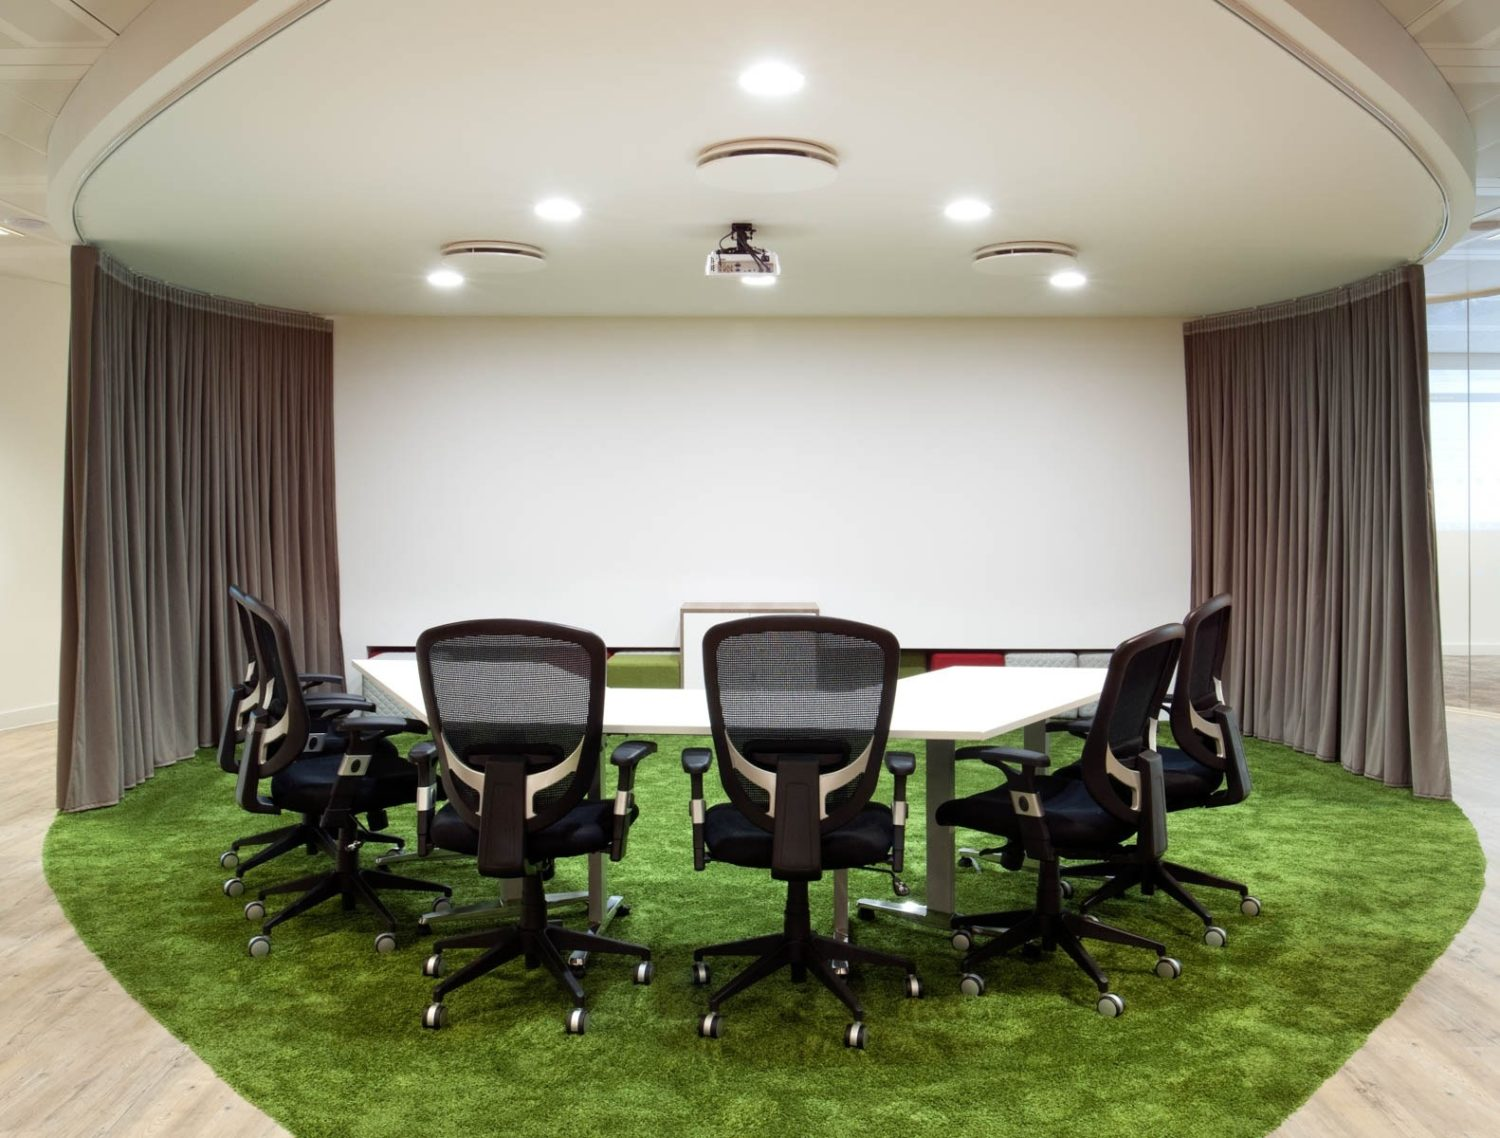 Artificial grass in meeting room